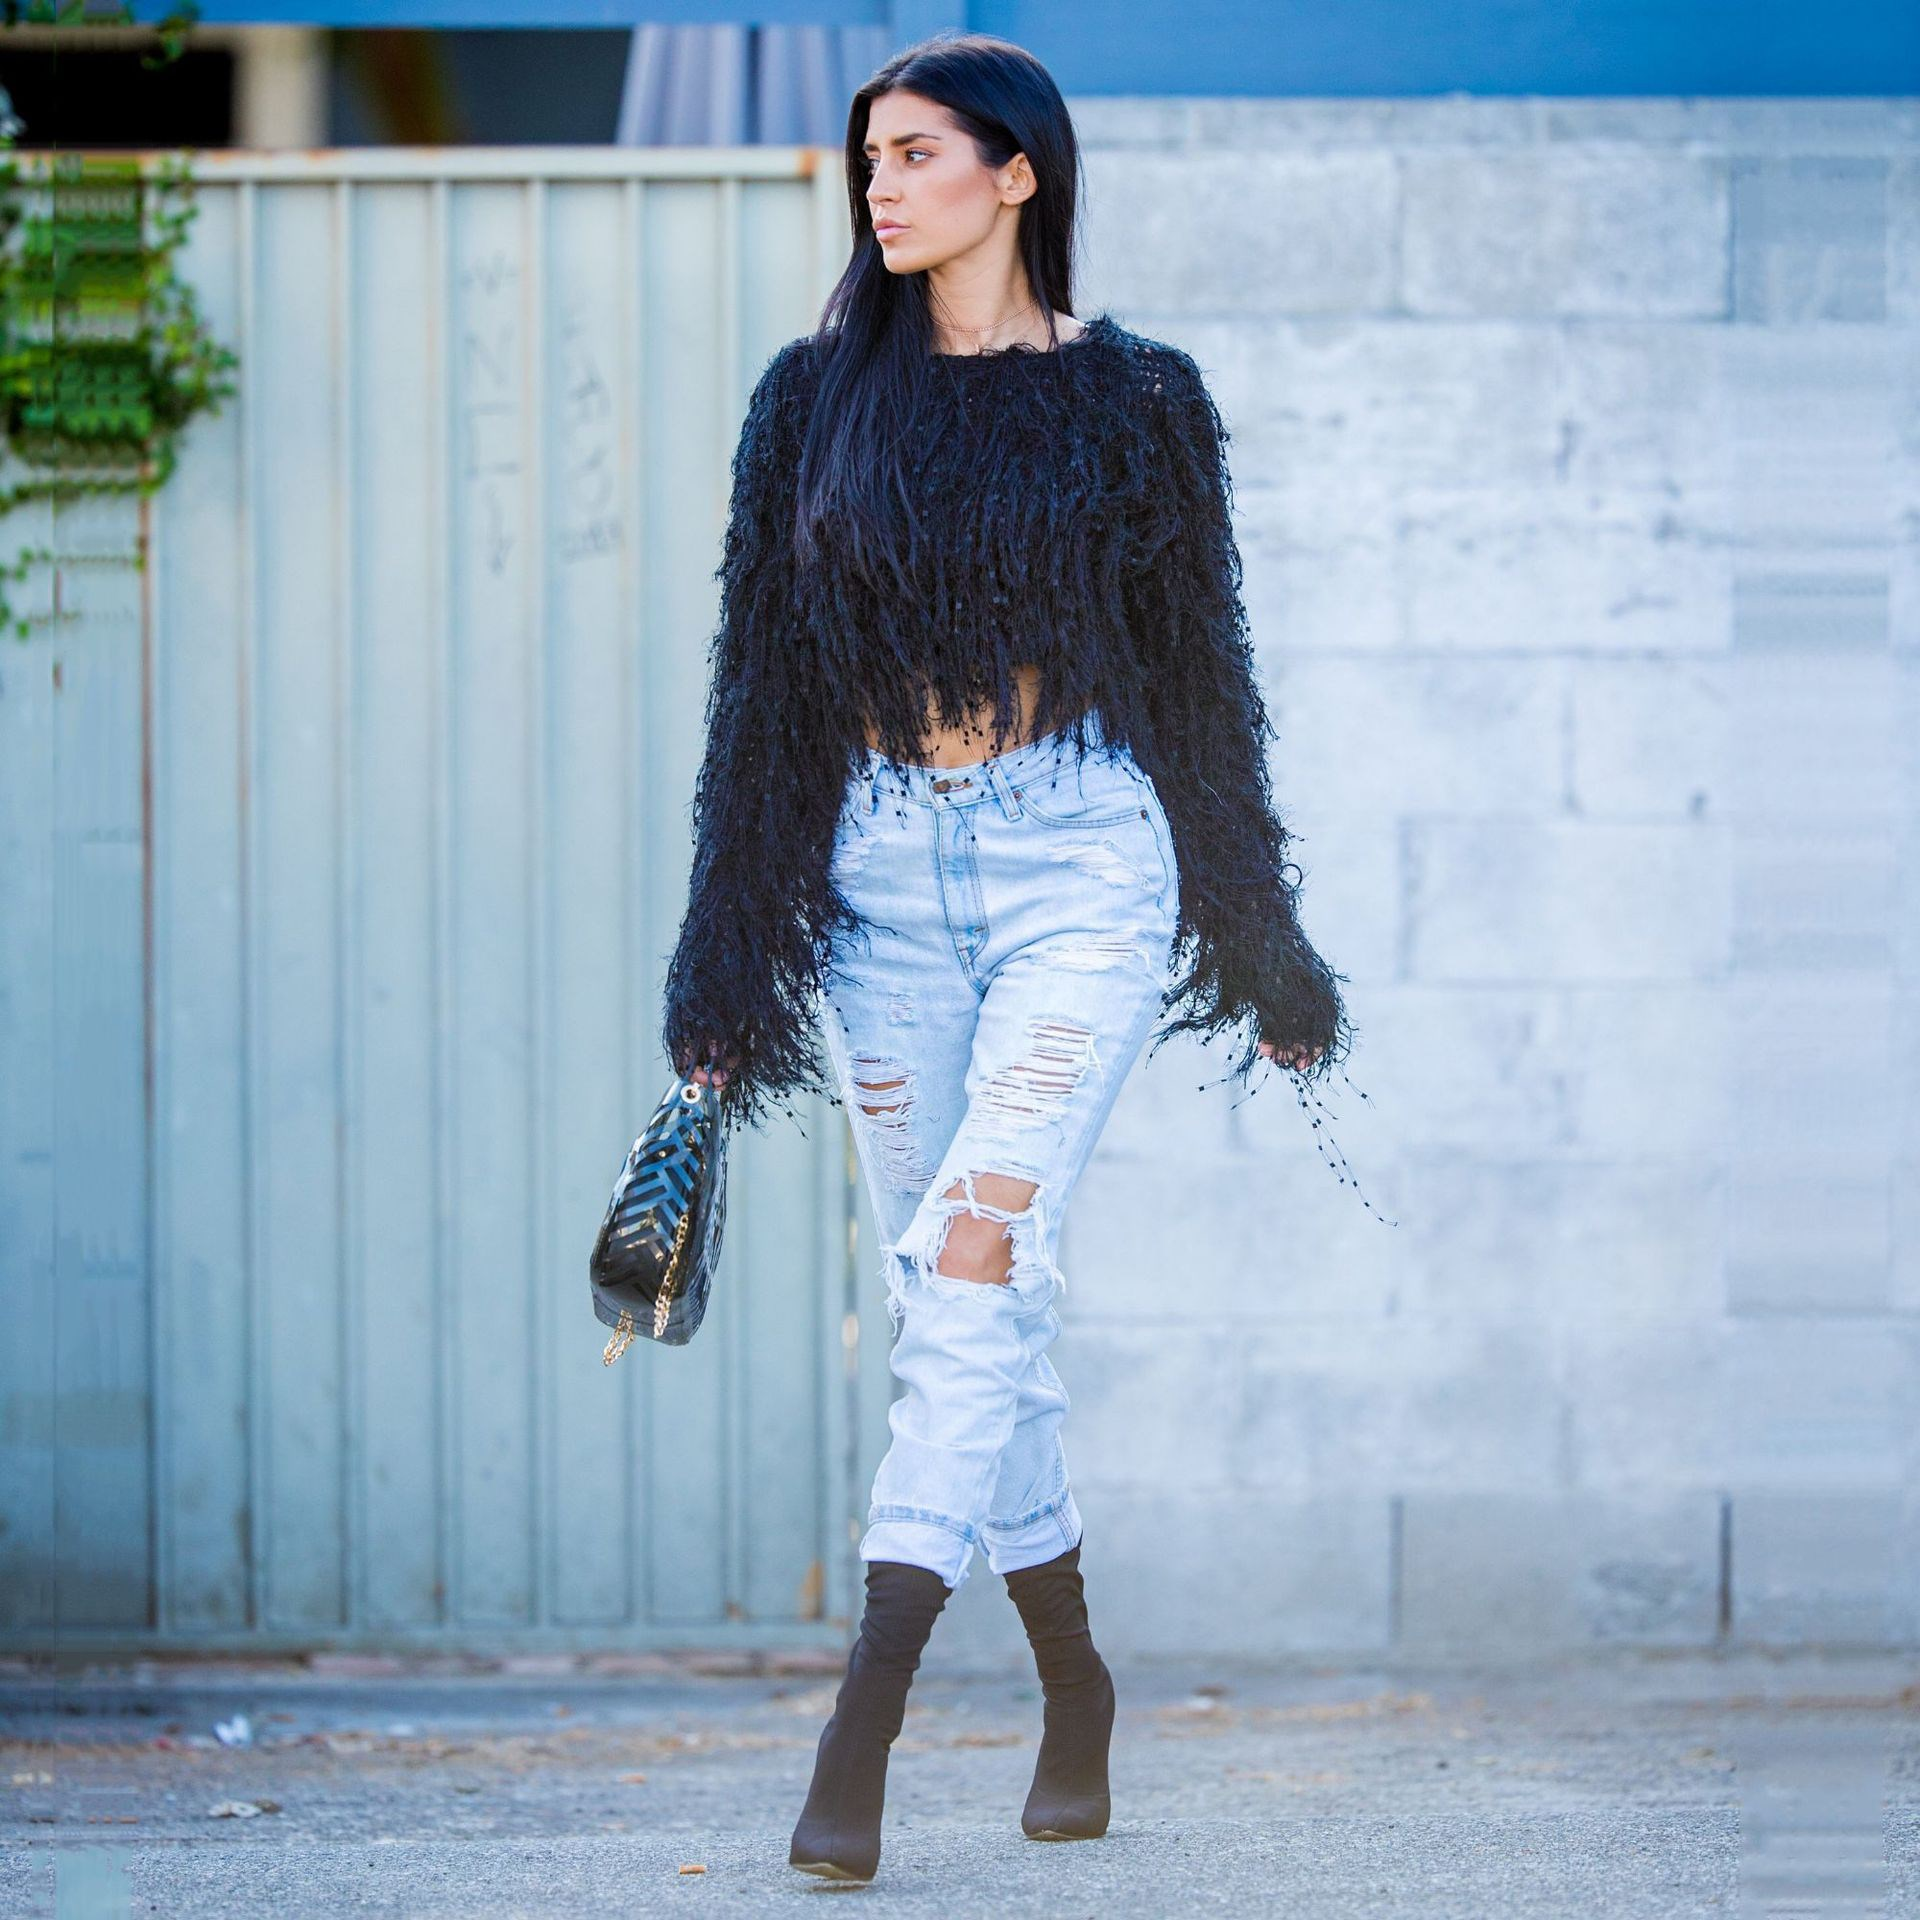 Women Solid Cropped Sweater Winter Tassel Mohair Sweater Shaggy Yarn Knitted Jumper Pullovers Sweater Thick Tops